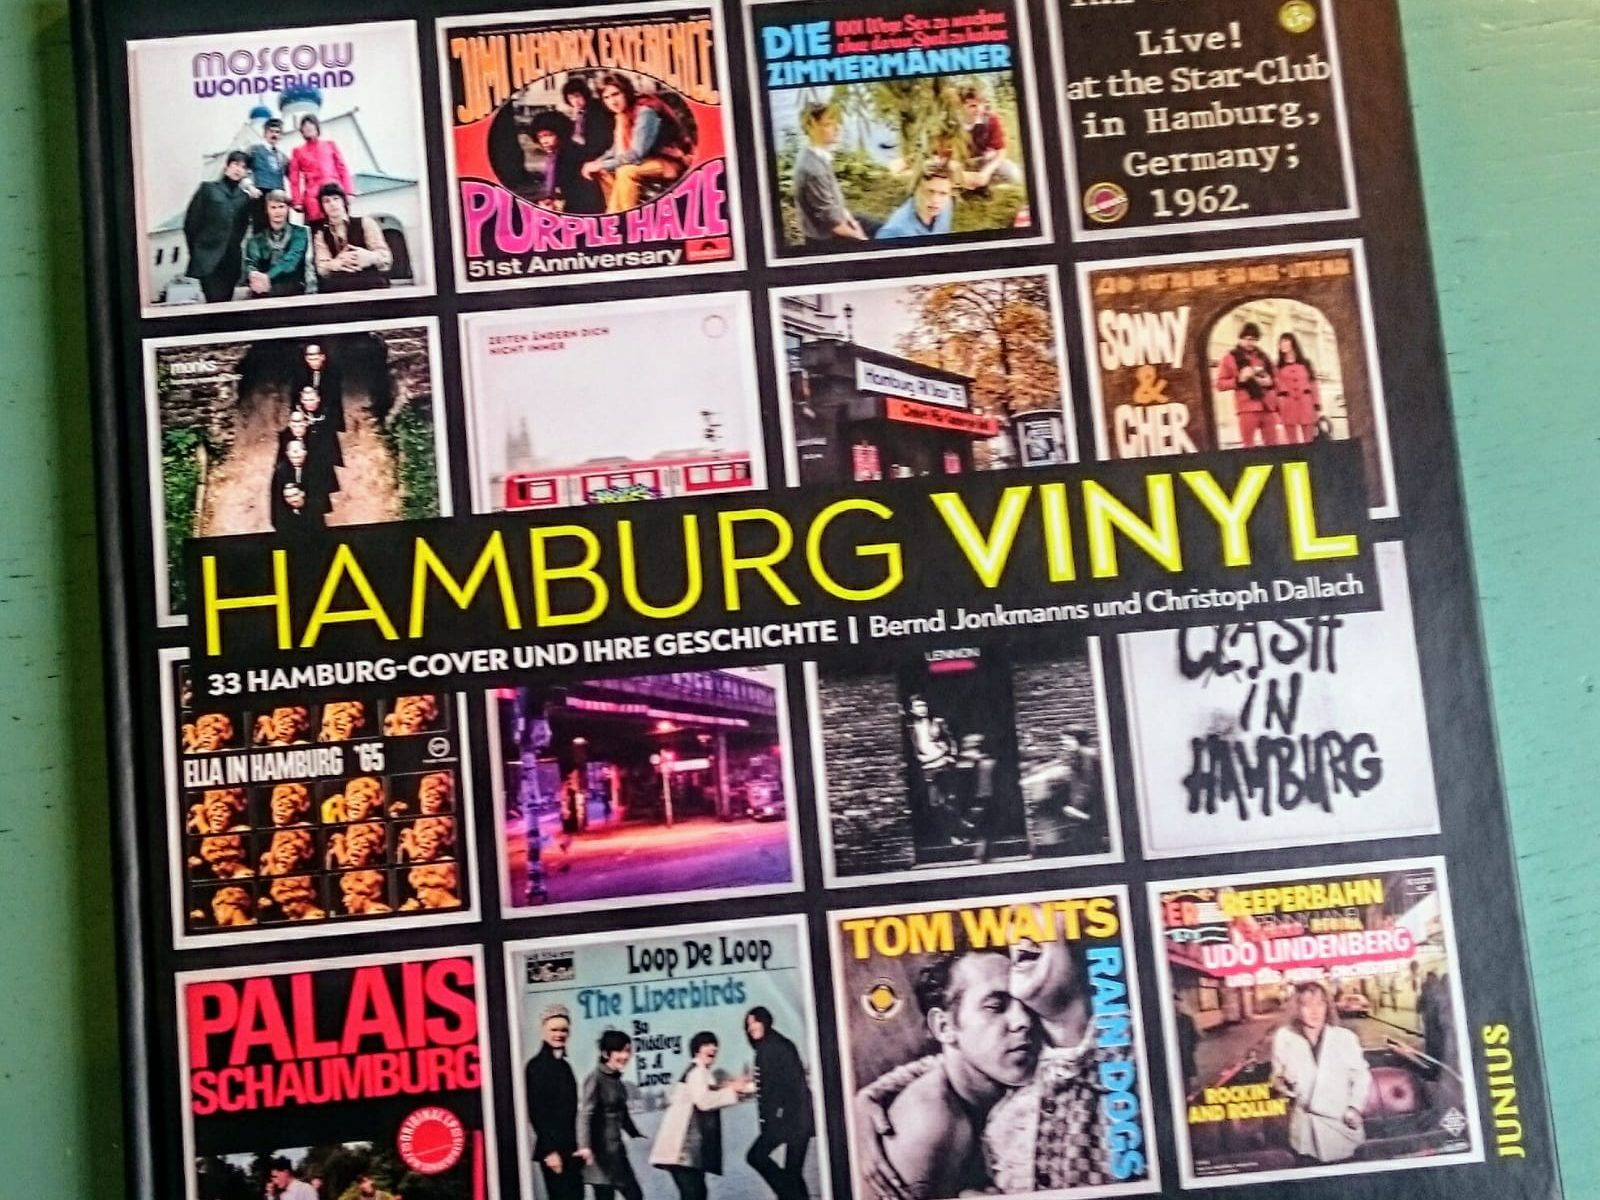 Vinyl, Hamburg, Hamburg Vinyl, Book, Buch, Records, Cover, Artwork, Photography, Bernd Jonkmanns, Journalist, Christoph Dallach, Onkel Pös, Tom Waits, Cher, Liverbirds